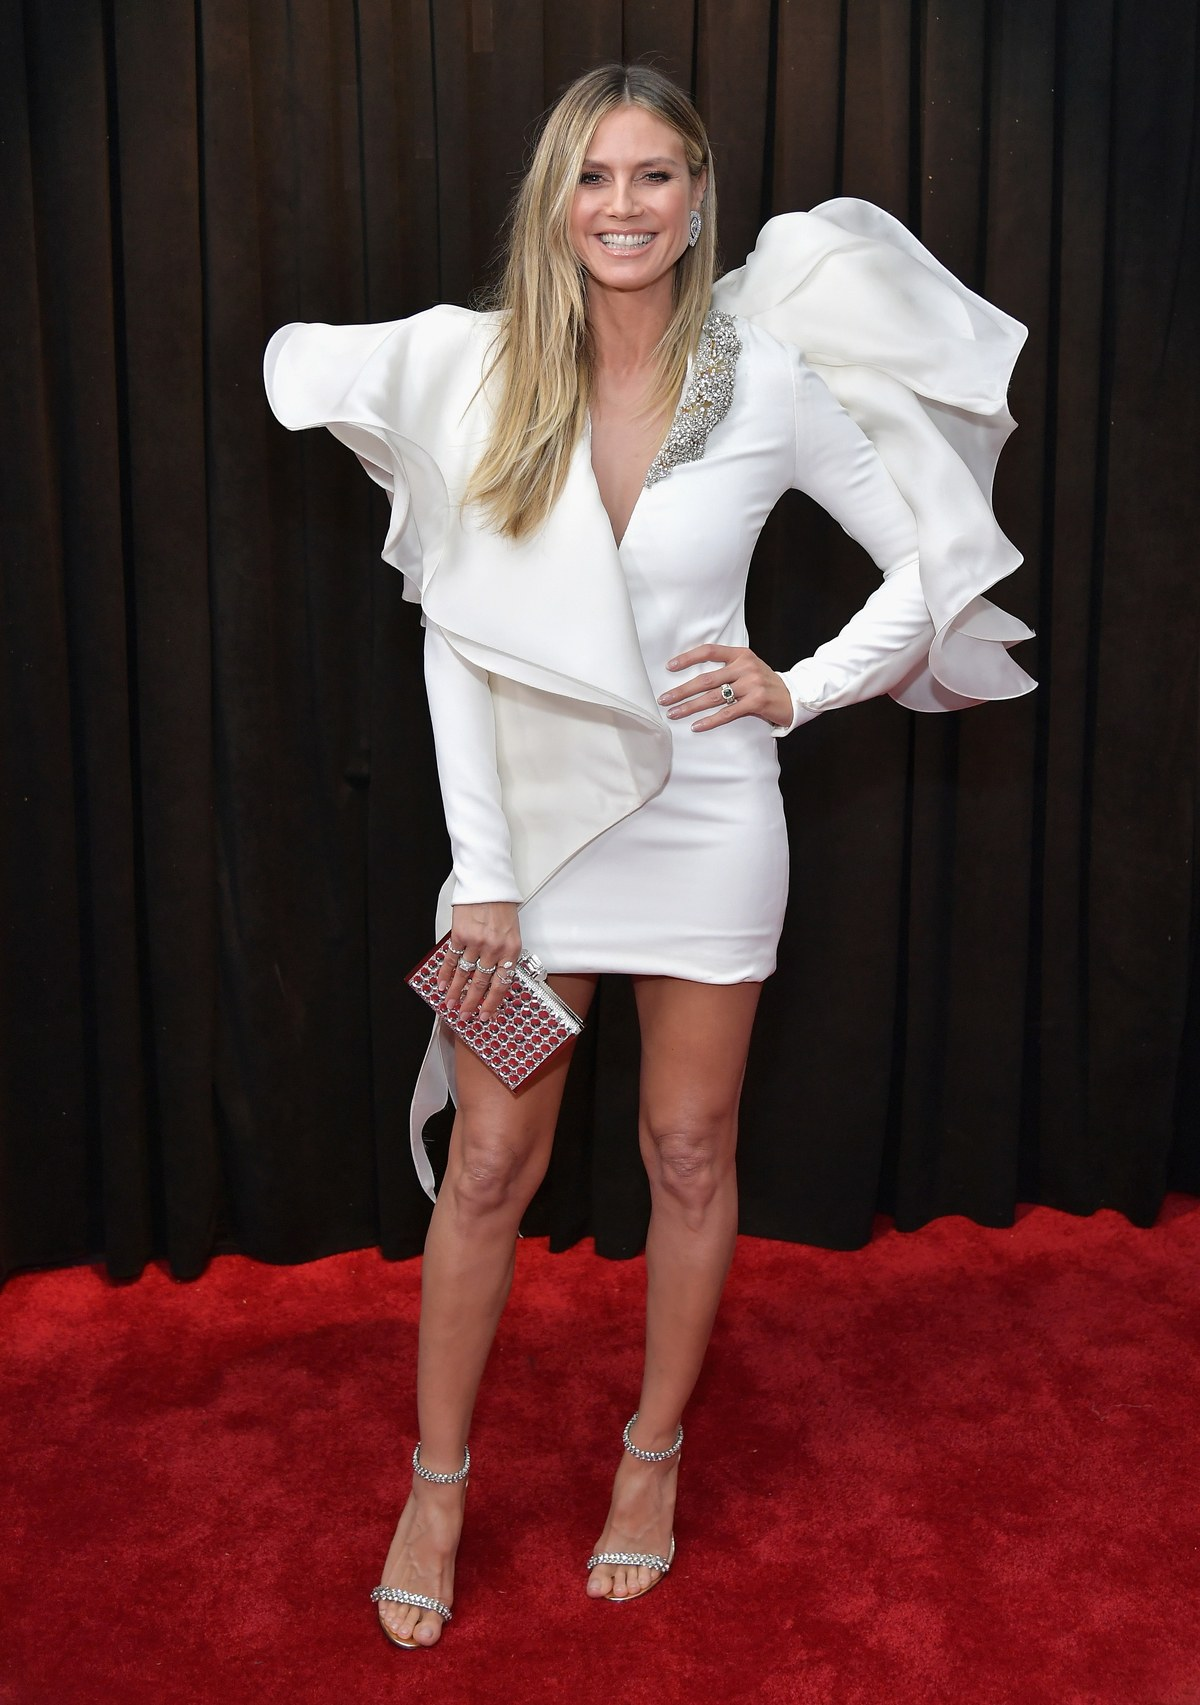 Heidi Klum in Stephane Rolland